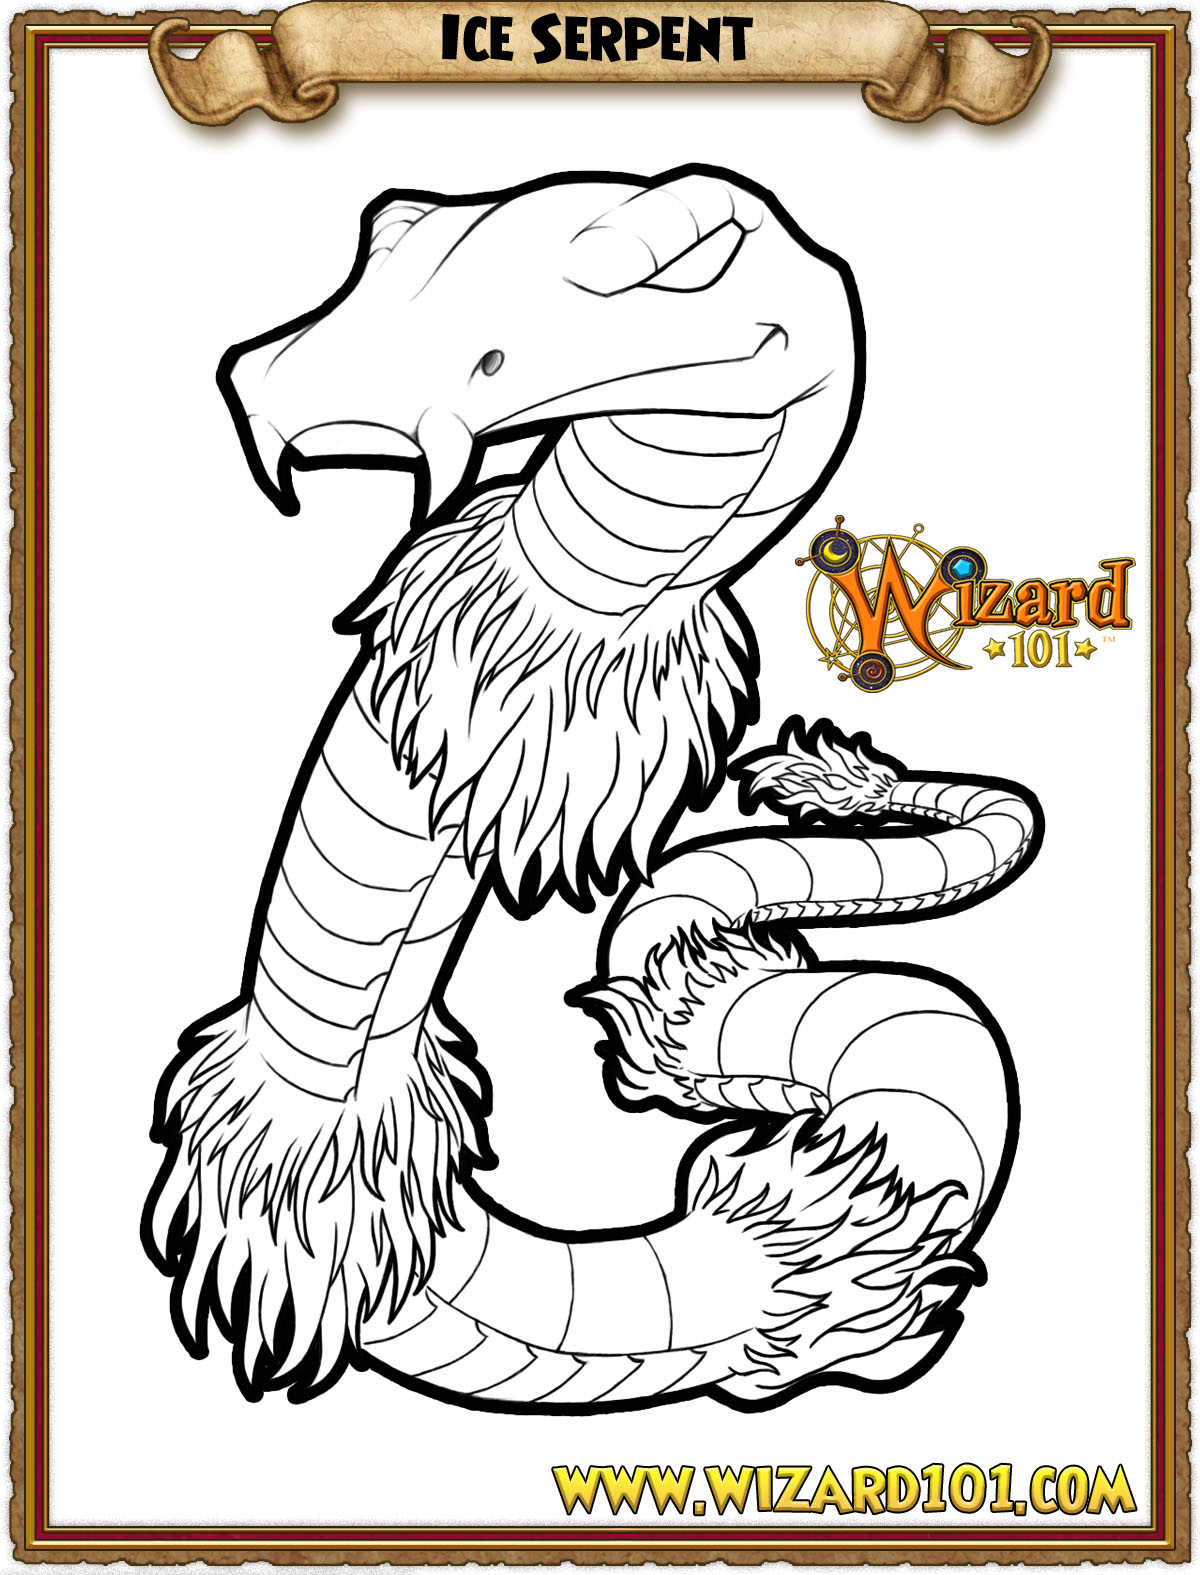 coloring pages wizard101 free online game rh wizard101 com Geisha Kimono Coloring Pages Wizard101 Pets Coloring Pages